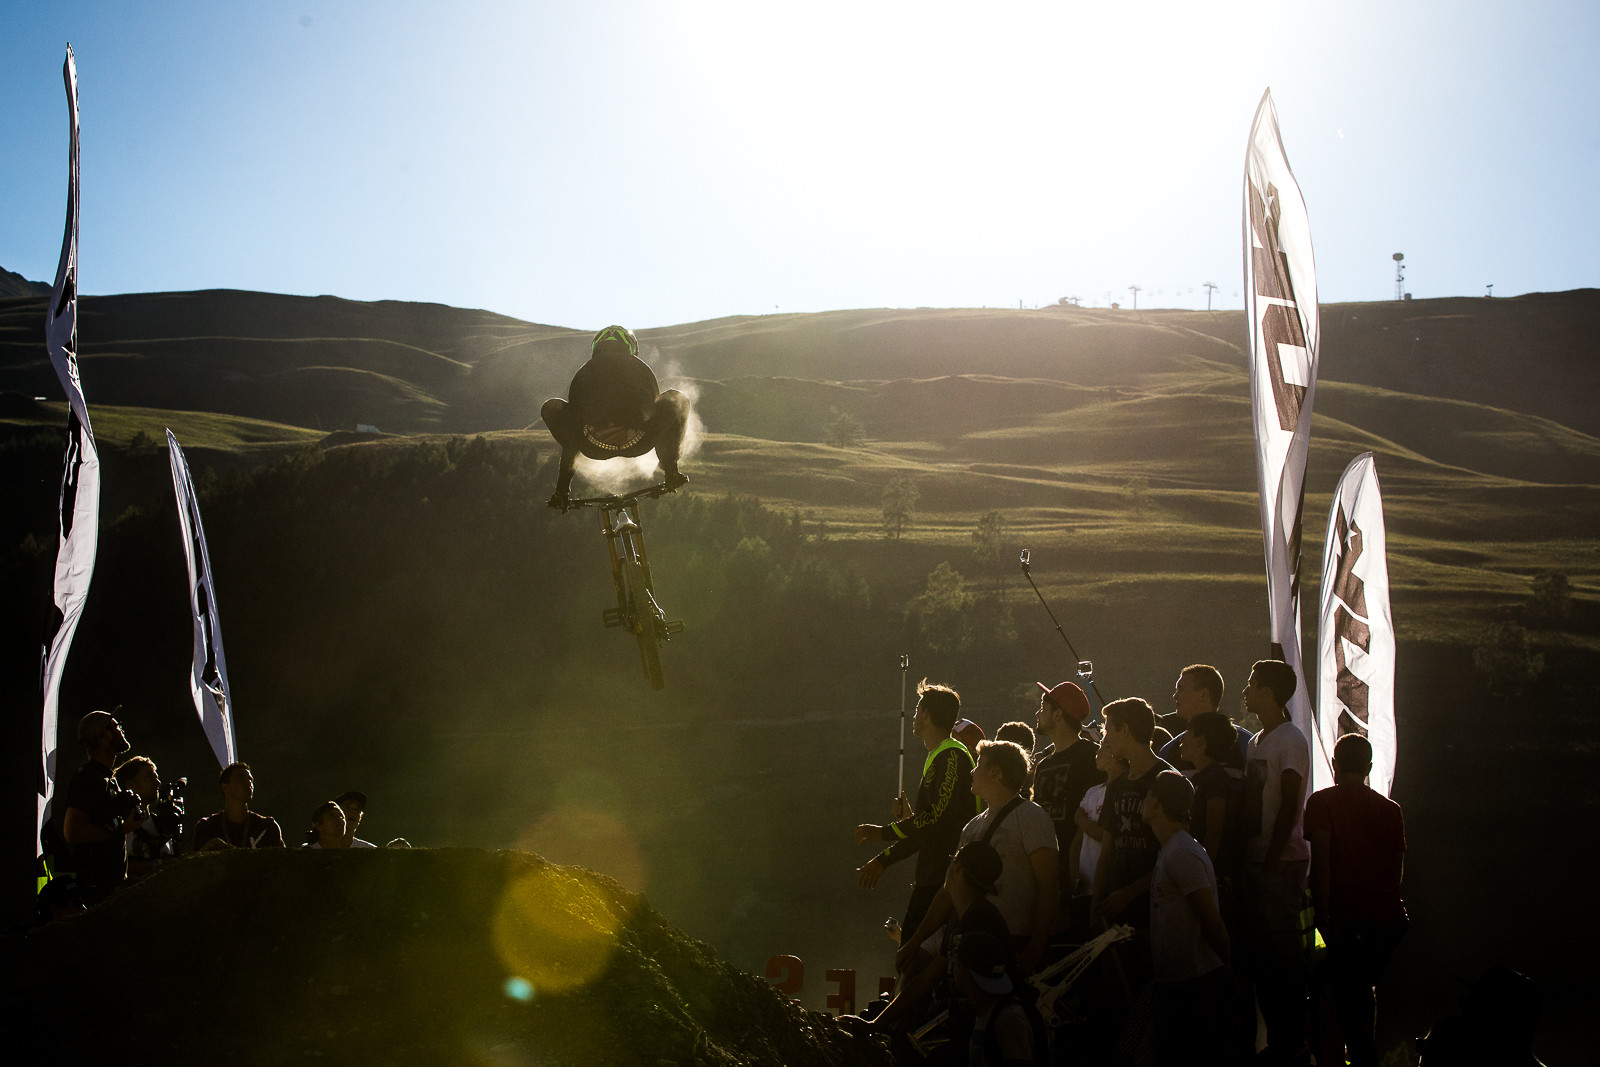 Heelclicker Dust, Whip Off European Champs, Crankworx L2A - Whip Off European Champs, Crankworx L2A - Mountain Biking Pictures - Vital MTB